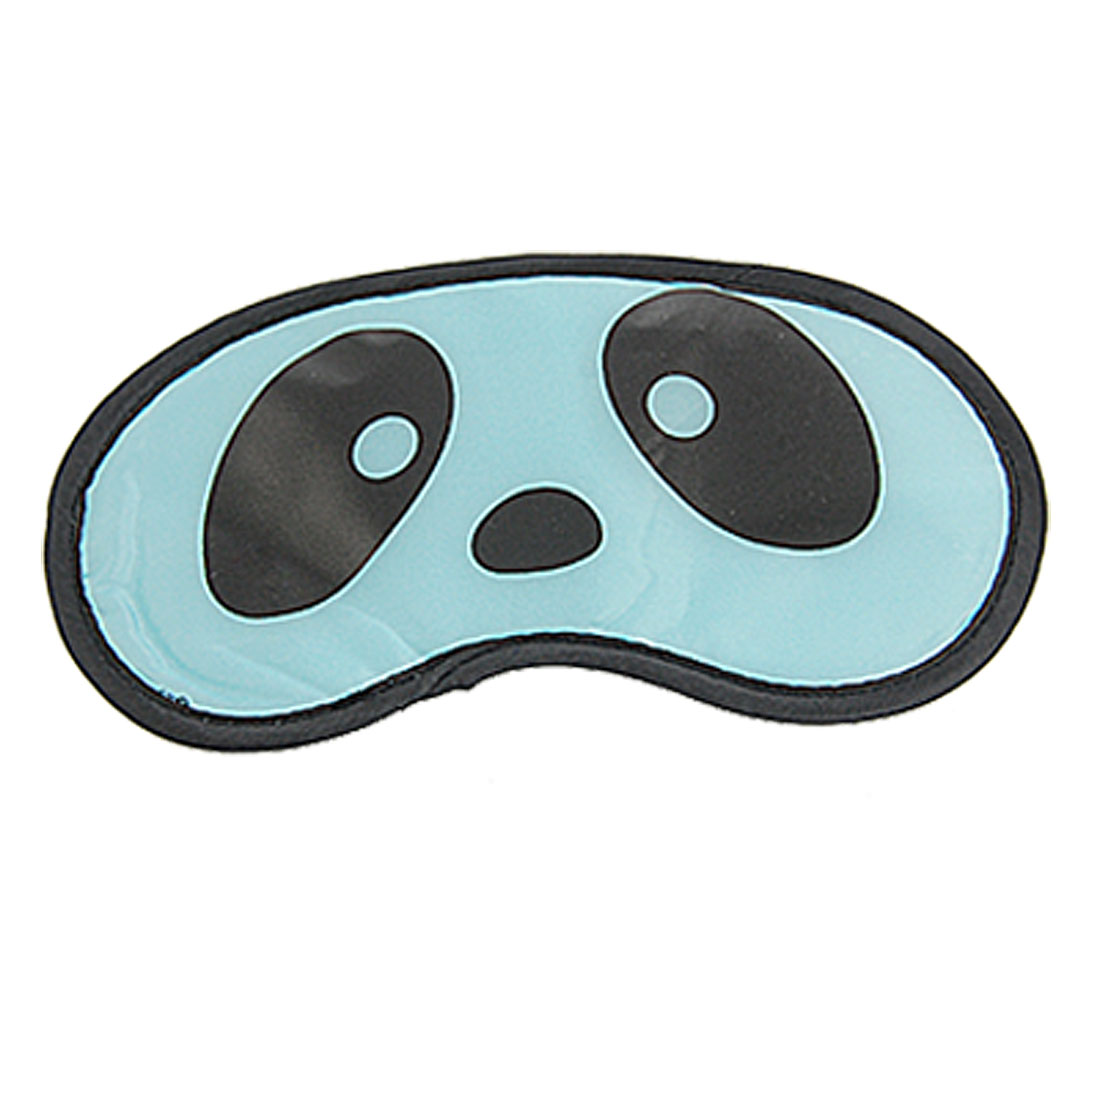 2 Pcs Blue Panda Eyes Print Built in Sponge Sleeping Aid Eye Mask Shade Blinder